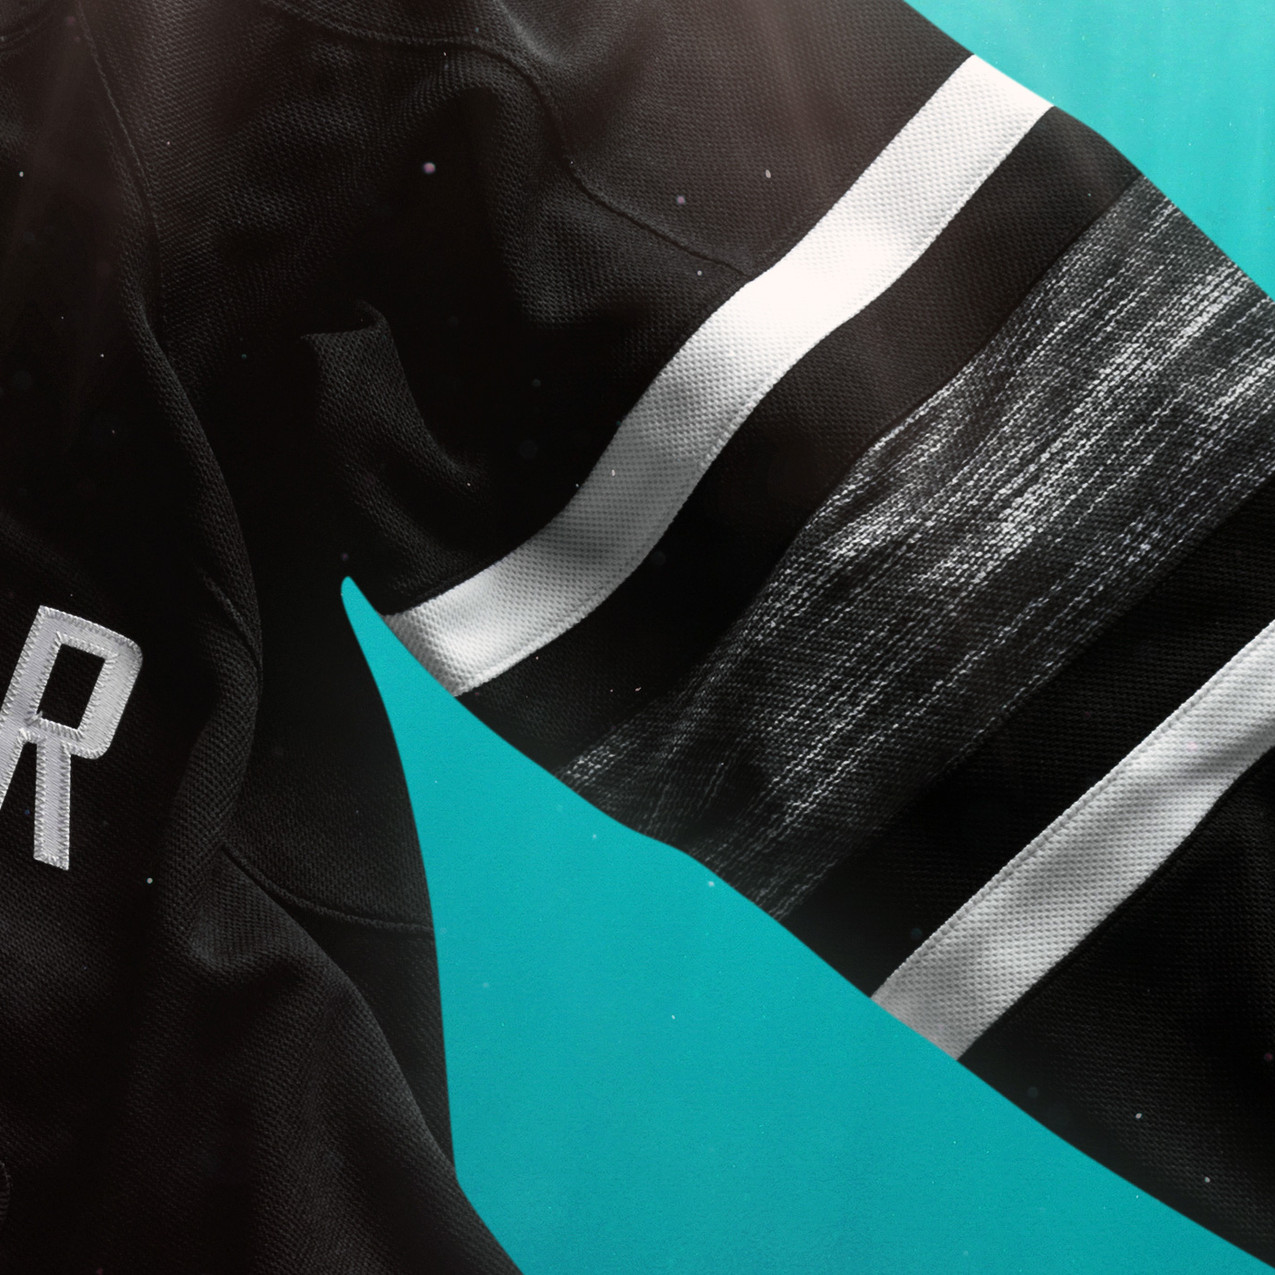 2019-NHL-ALL-STAR-JERSEY-SLEEVE-STRIPING